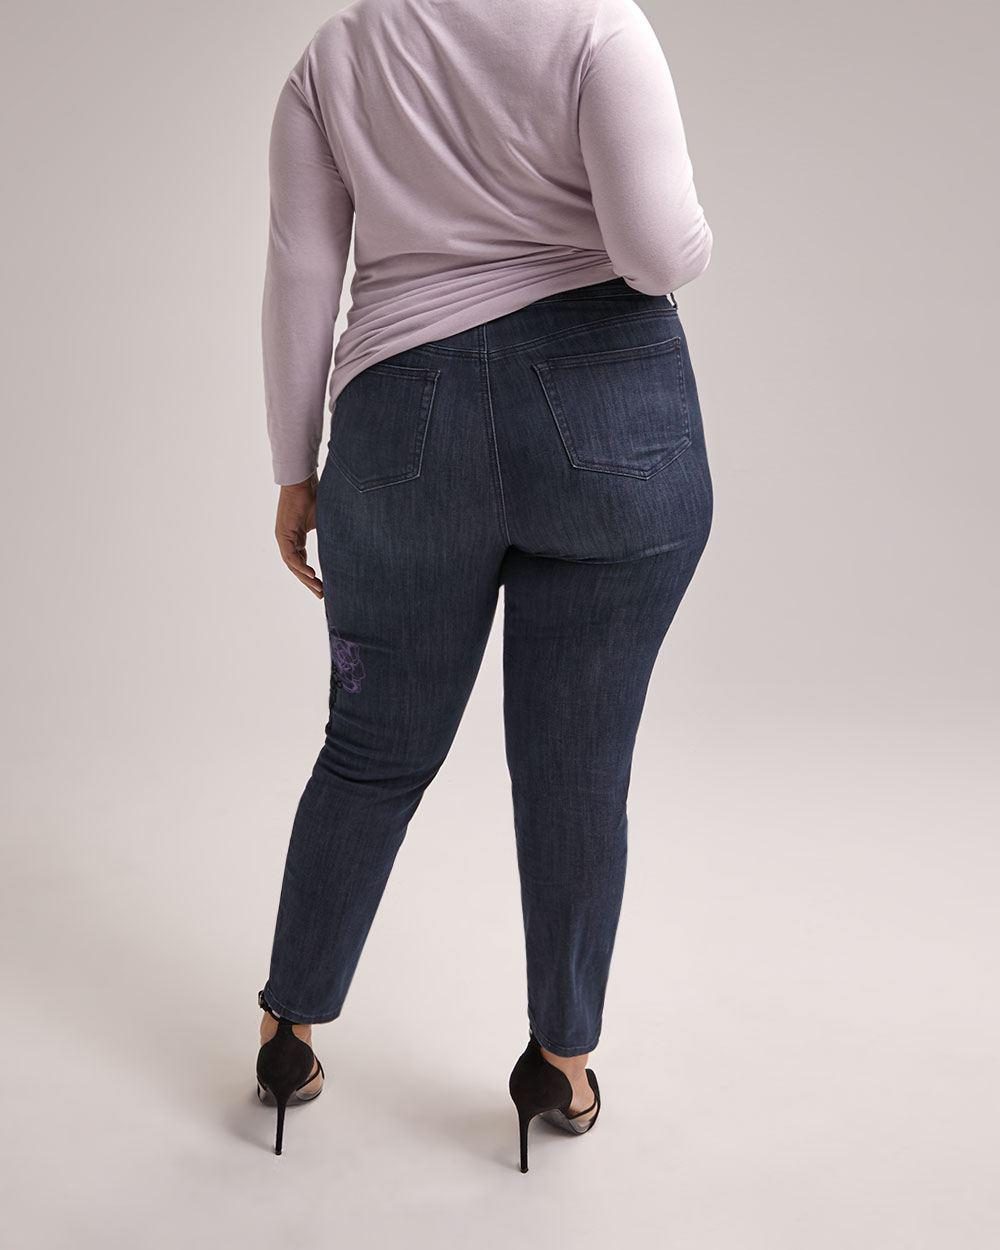 dd47f1935a6 Lyst - Addition Elle Online Only - Tall Slightly Curvy Straight Leg  Girlfriend Jean - D c Jeans in Blue